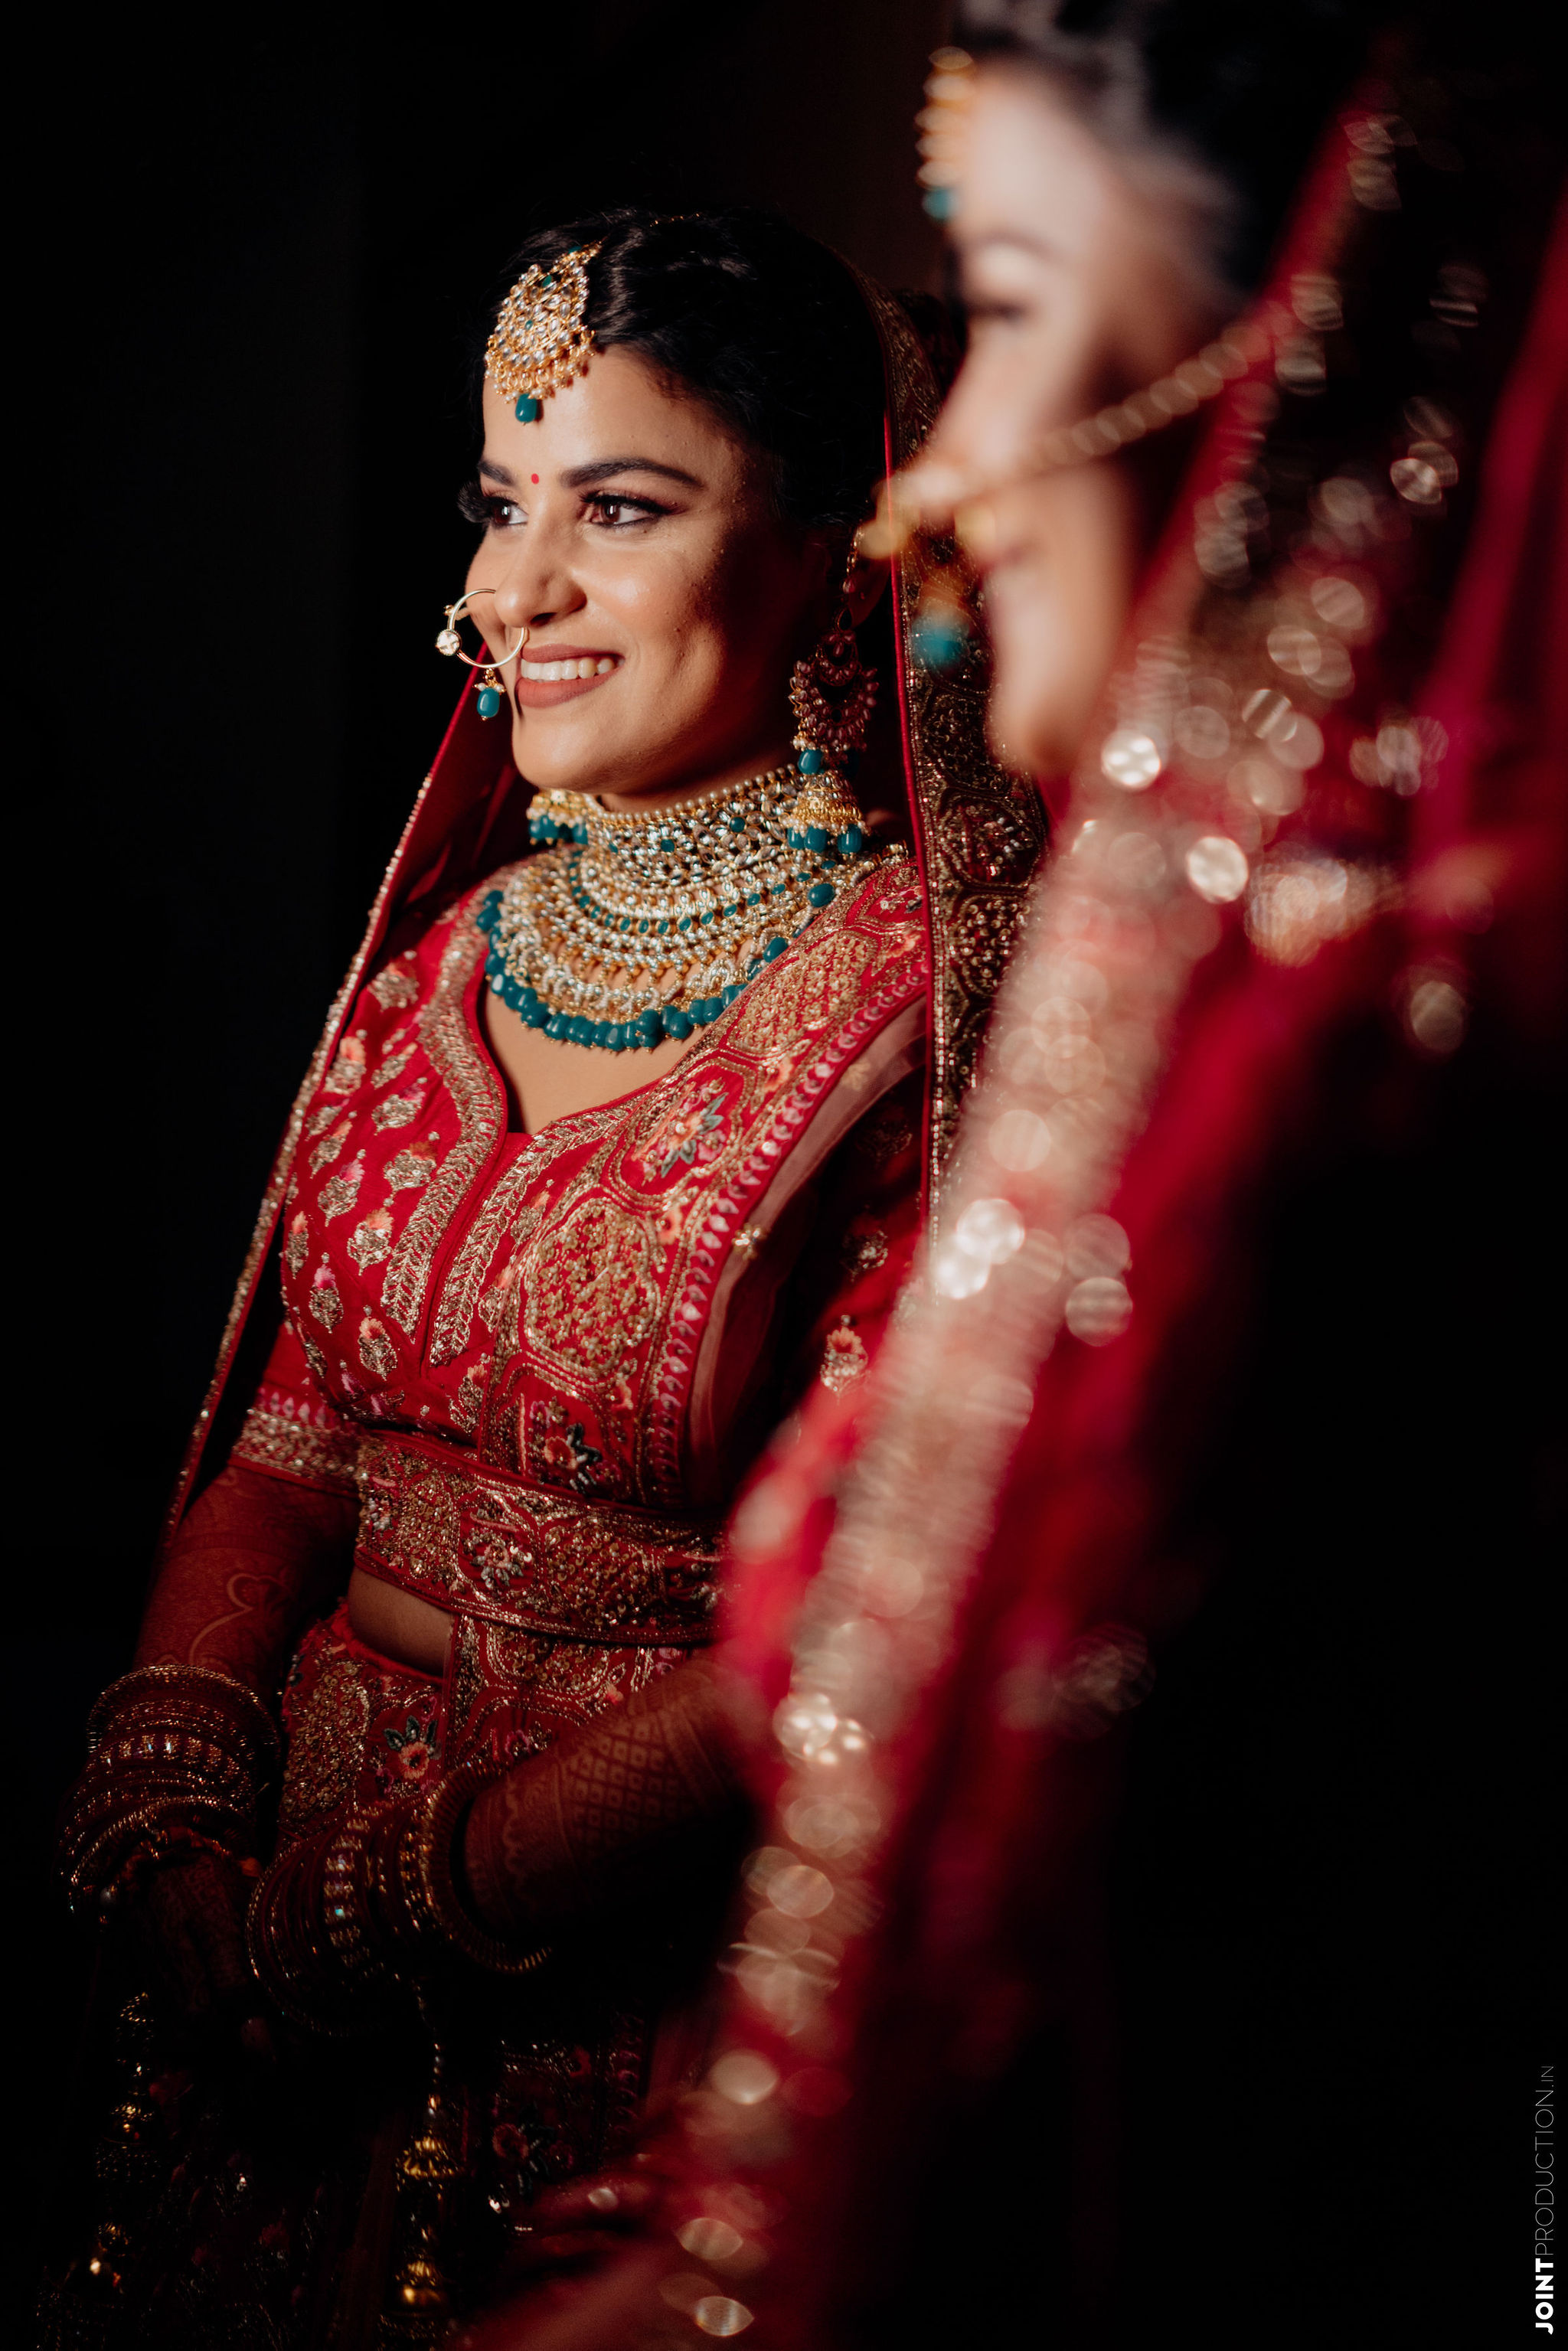 candid shot of the happy bride in red